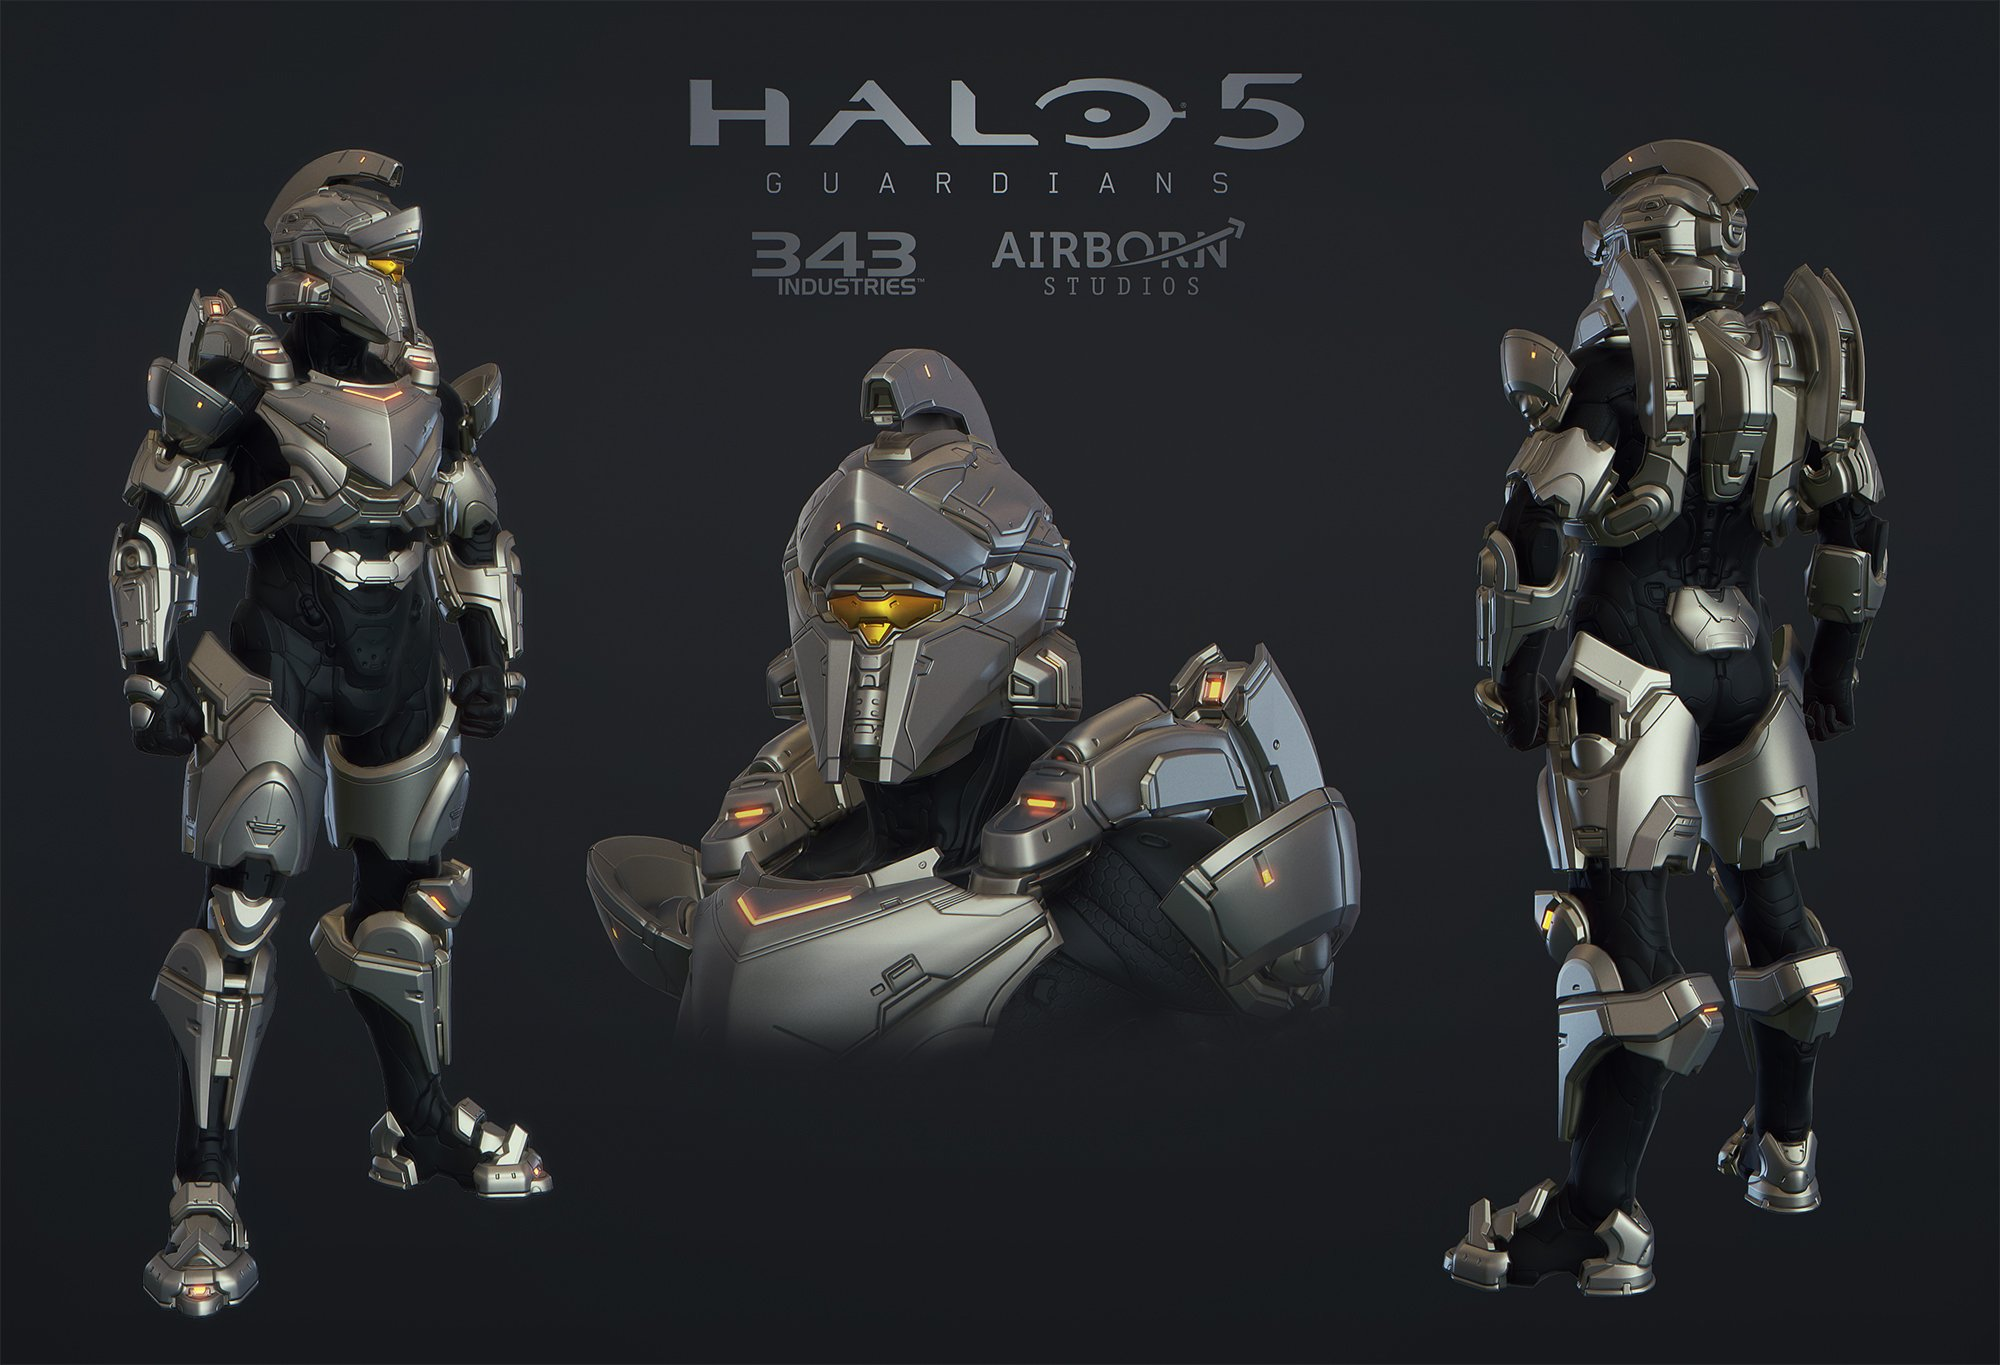 Halo 5 Multiplayer Armor Achilles by polyphobia3d 2000x1365